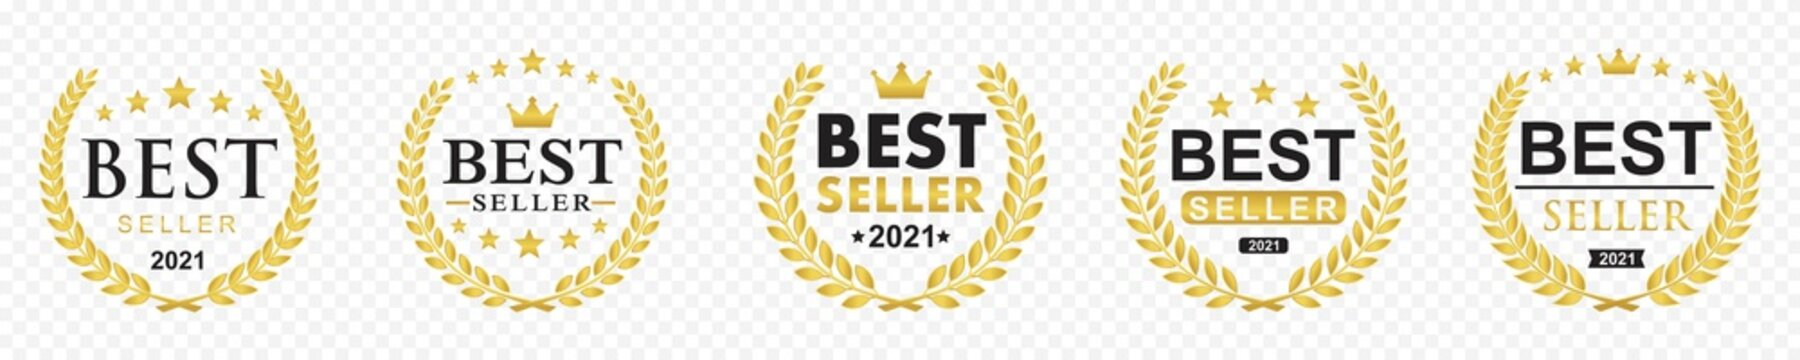 Set of best seller icon design with laurel wreath, best seller badge logo isolated transparent background, vector illustration